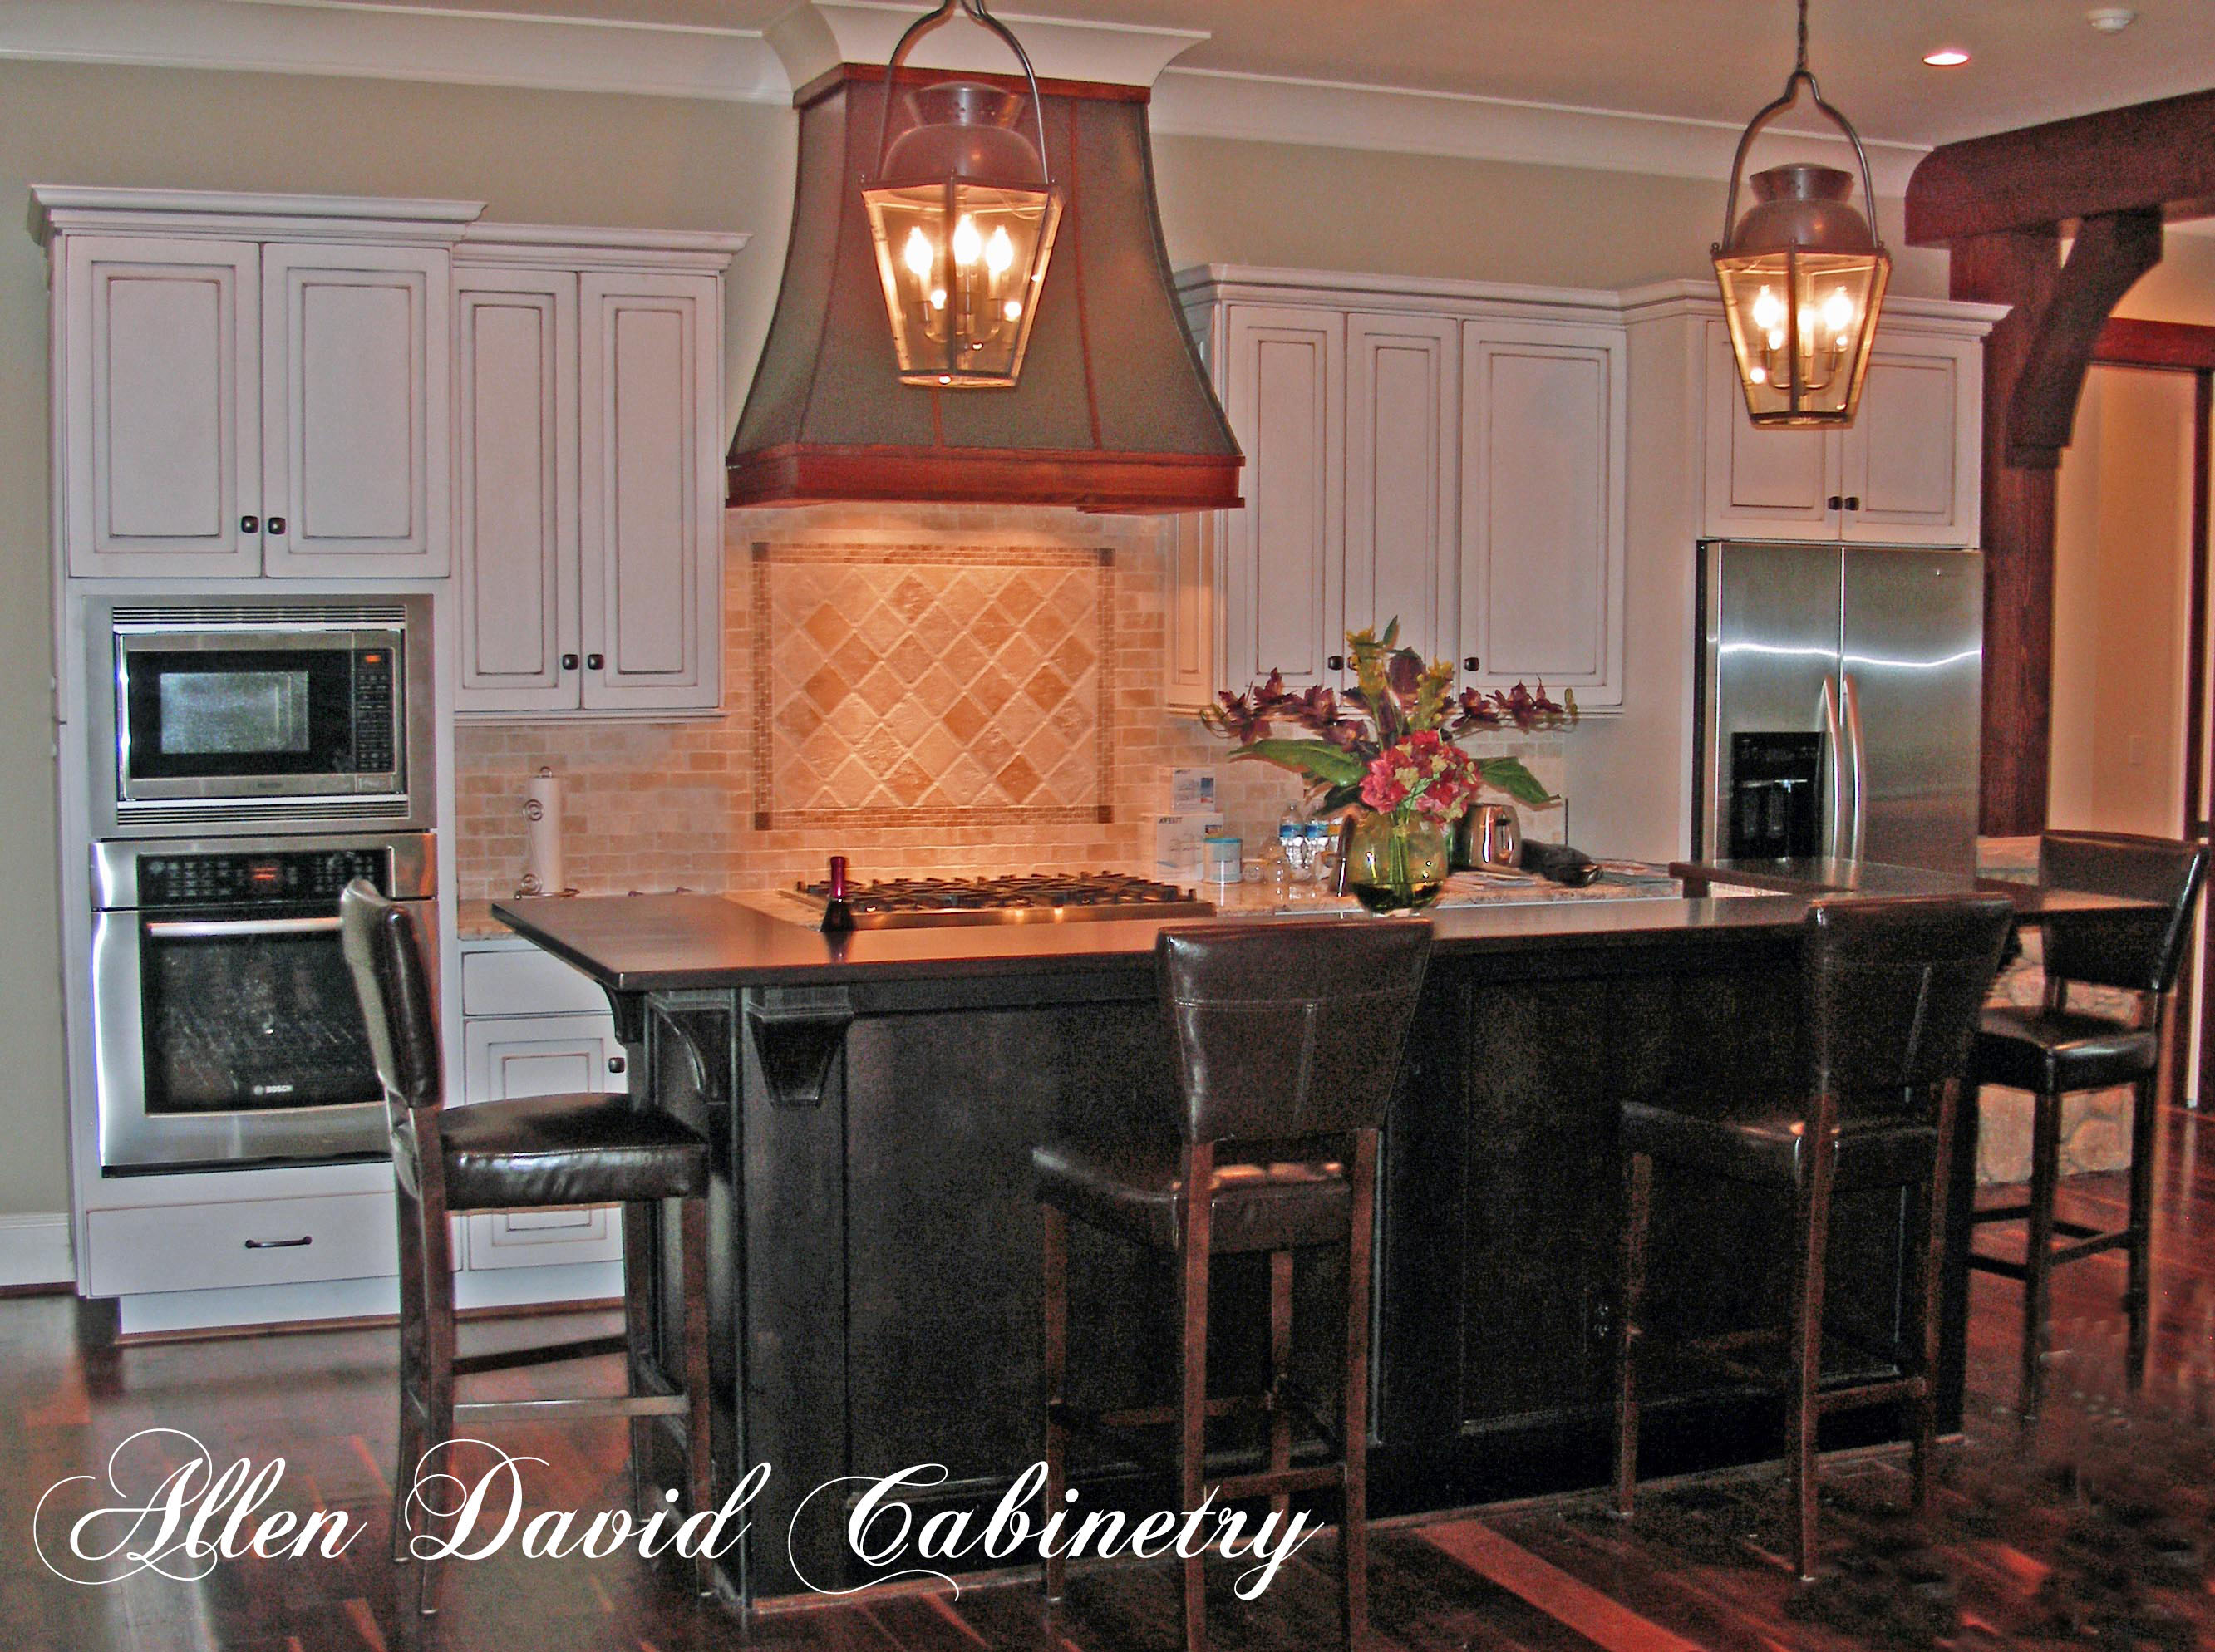 cabinets and kitchen remodel wwwallen davidcom